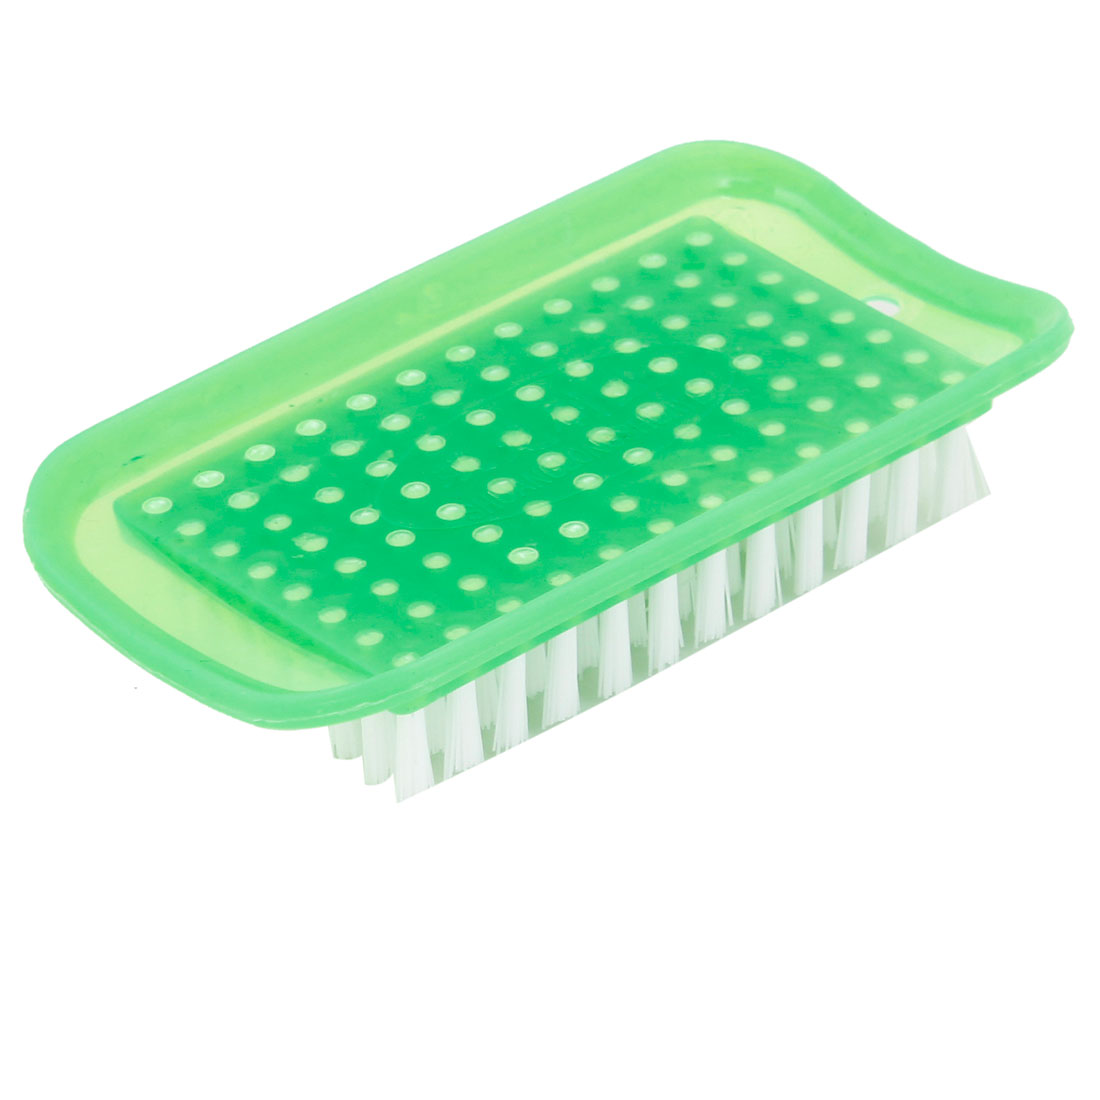 Light Green Rectangle Shaped Plastic Household Laundry Brush